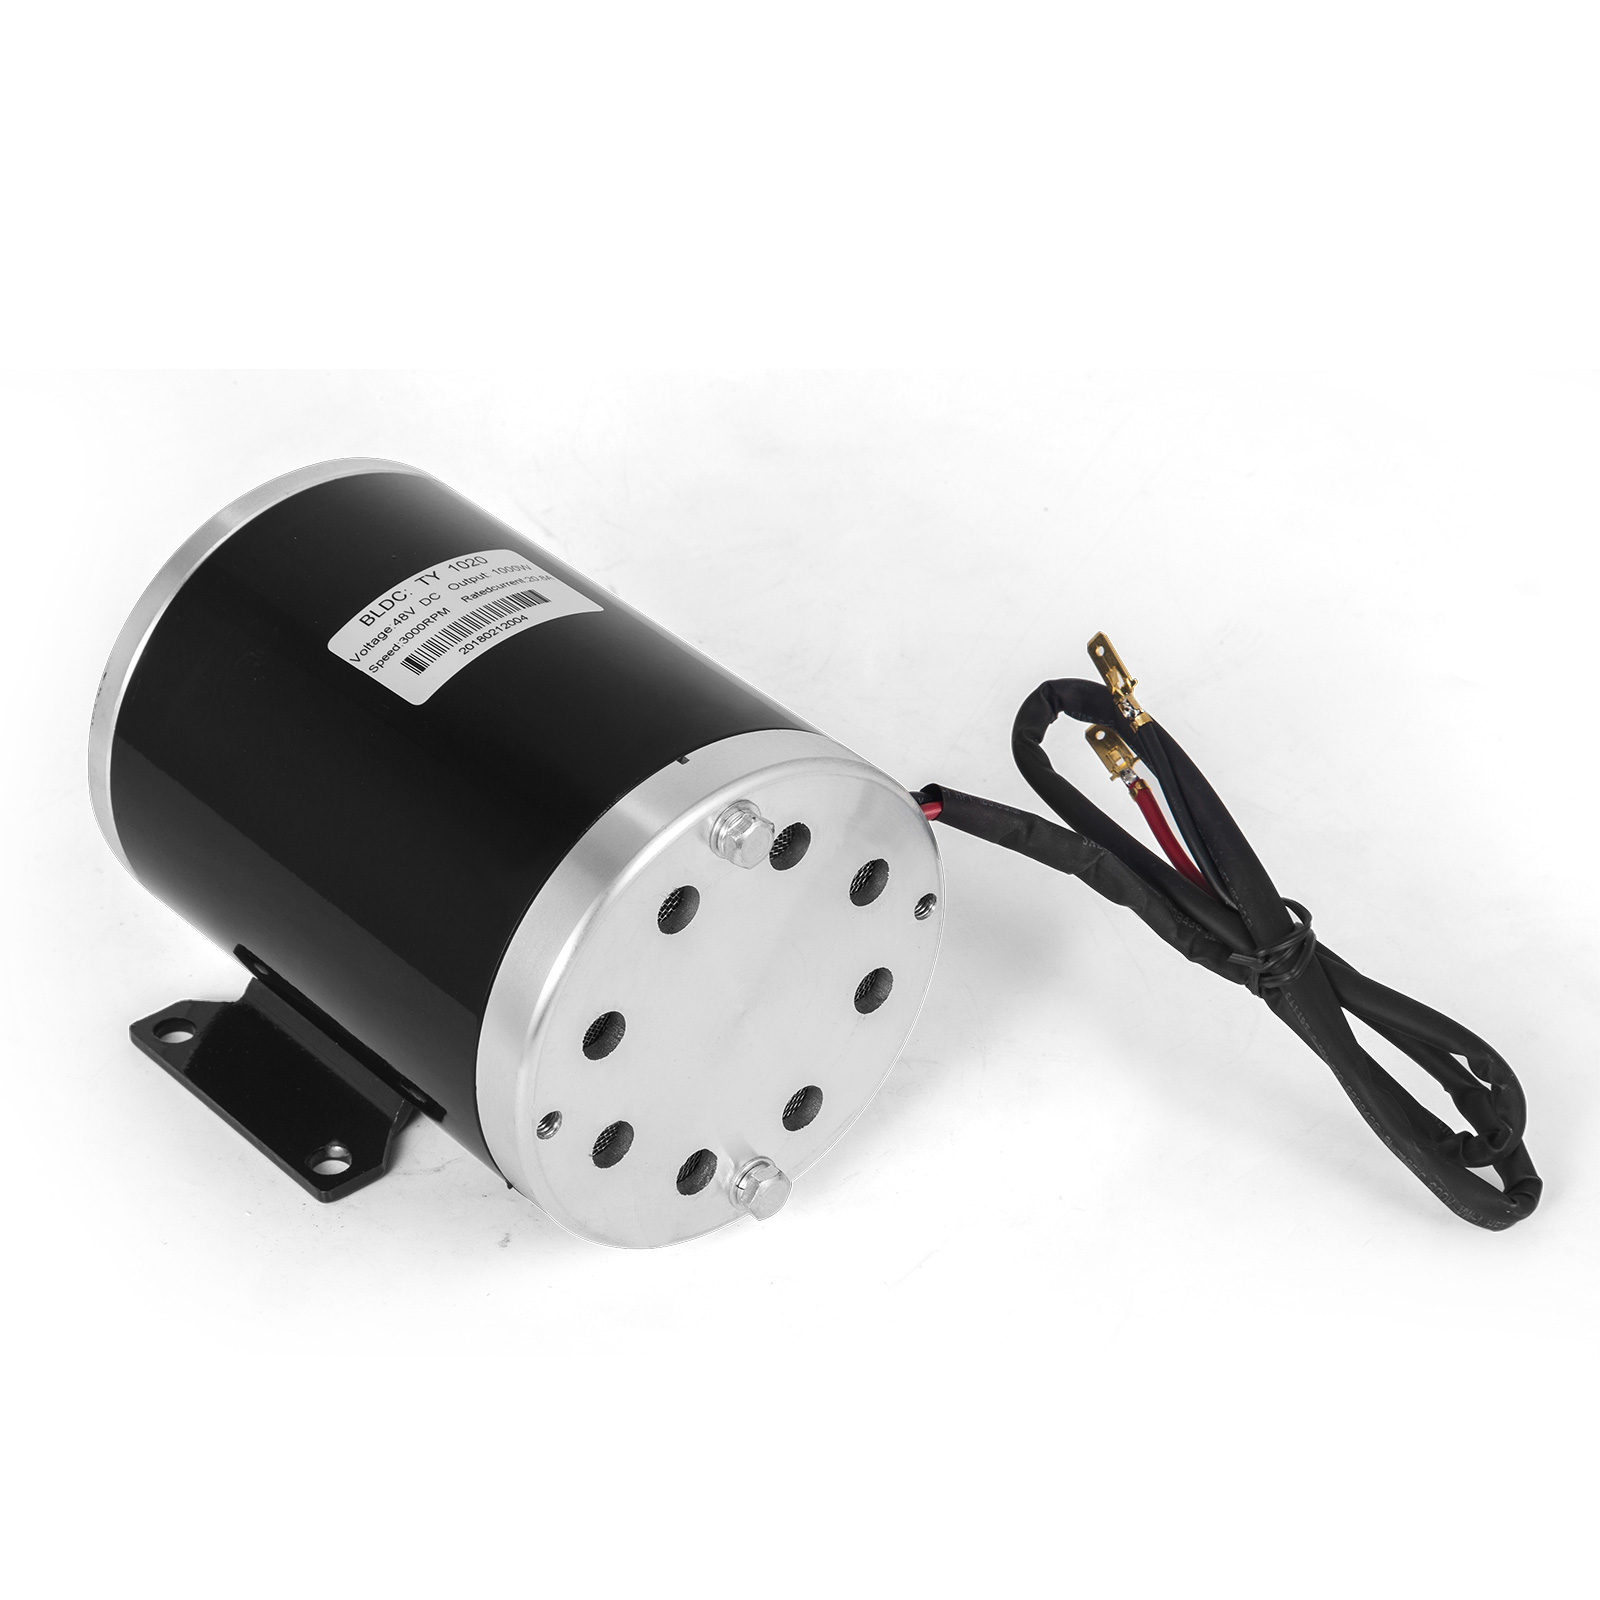 1000W 48V DC Electric Motor scooter mini bike TY1020 sprocket Permanent scooter